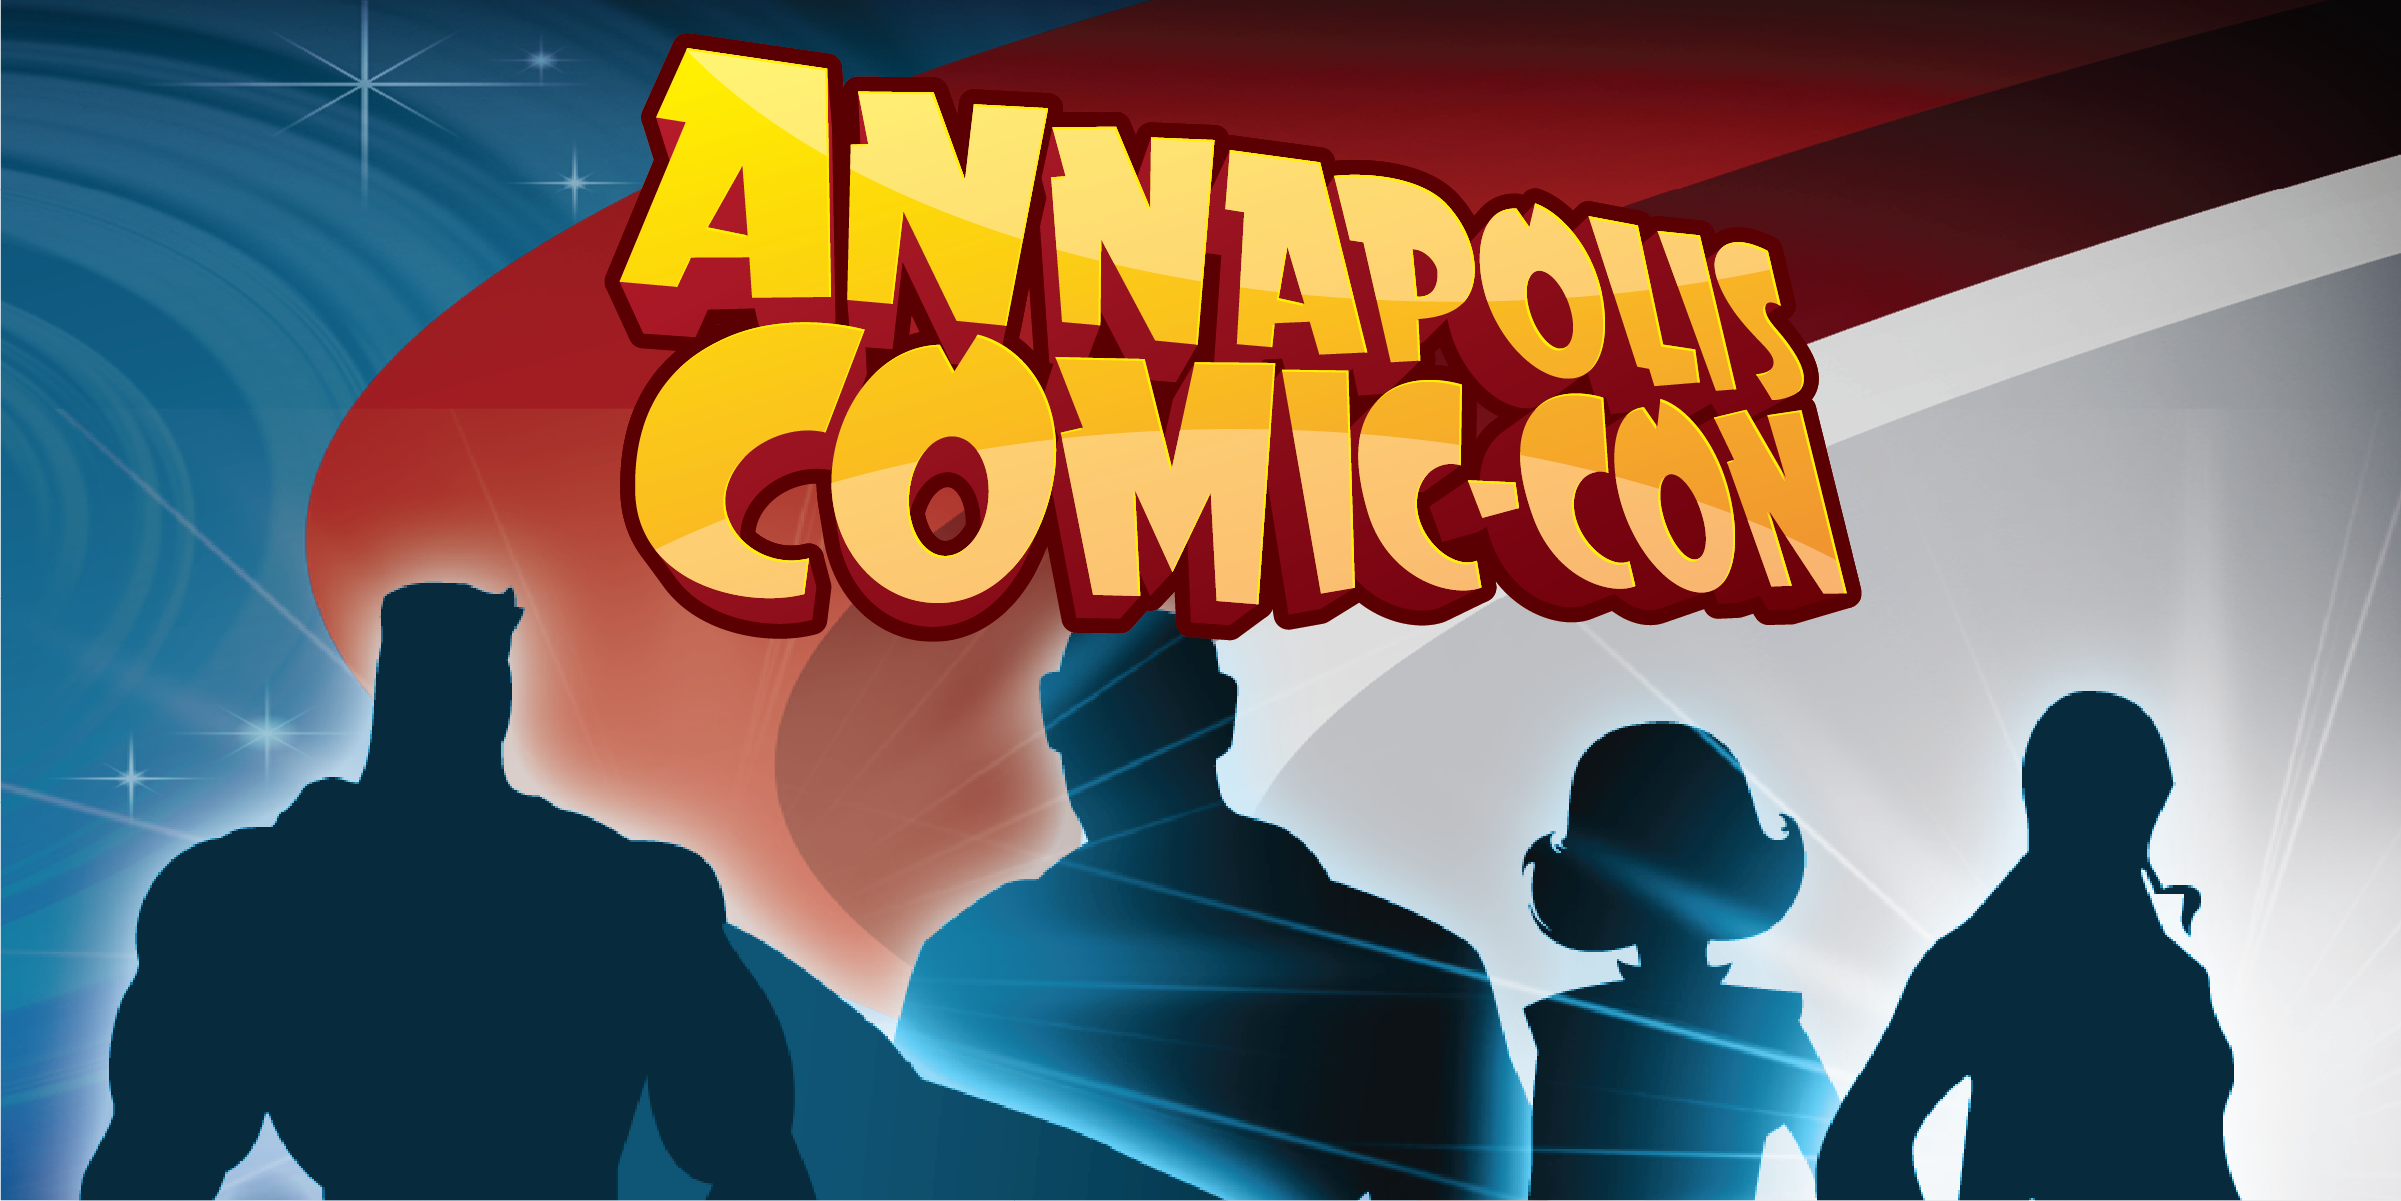 2020 Pop Culture Events.Annapolis Comic Con 2020